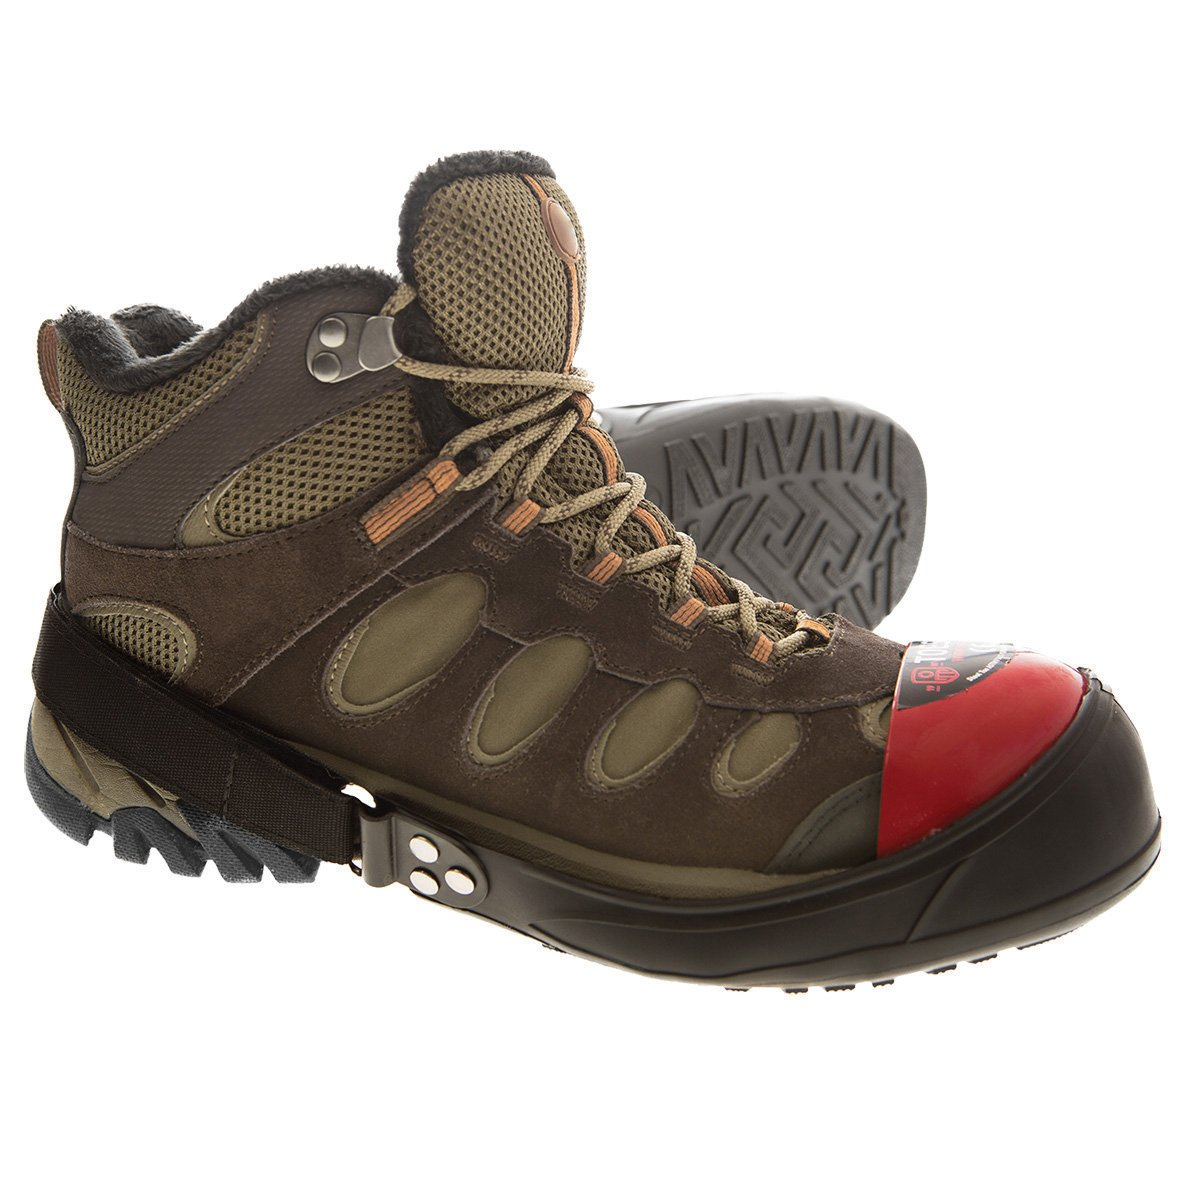 Impacto T2GUM Toes2Go Protective Safety Boot and Shoe Covers, Medium, Red by Impacto (Image #2)